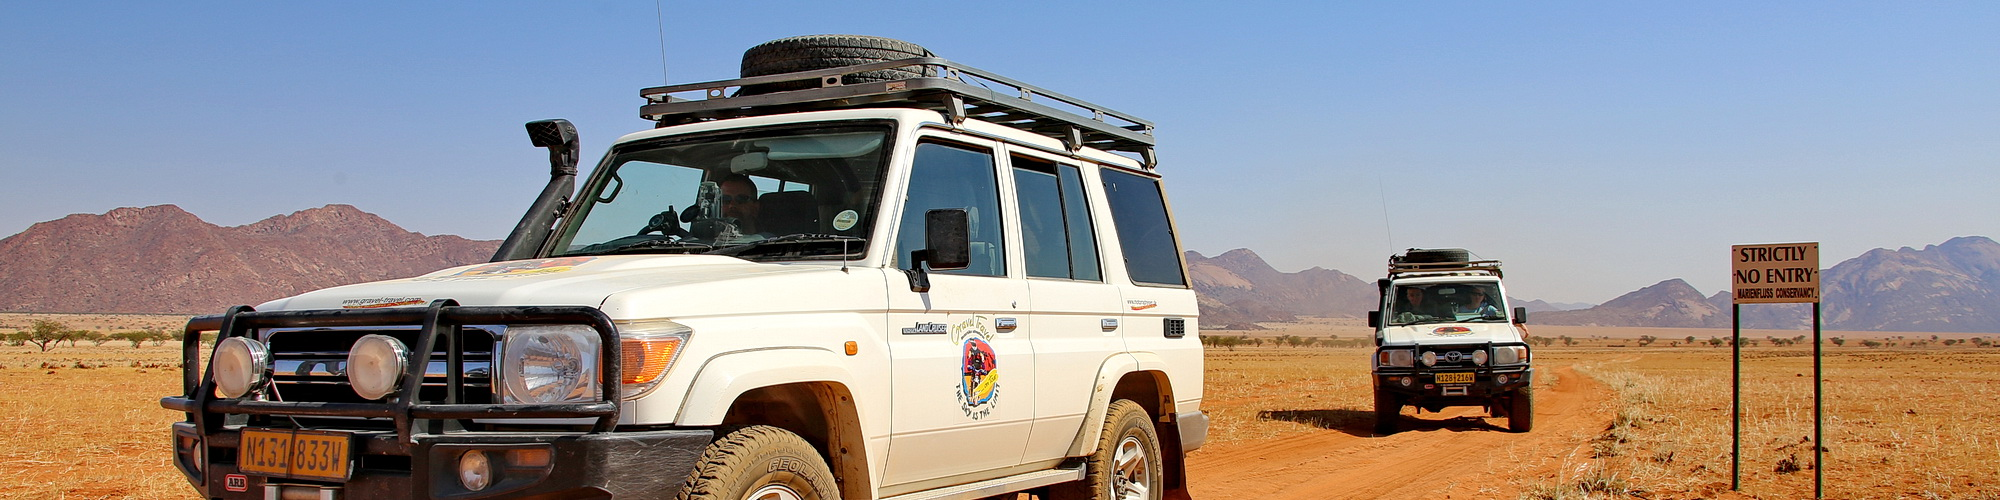 namibia-offroad-017.jpg